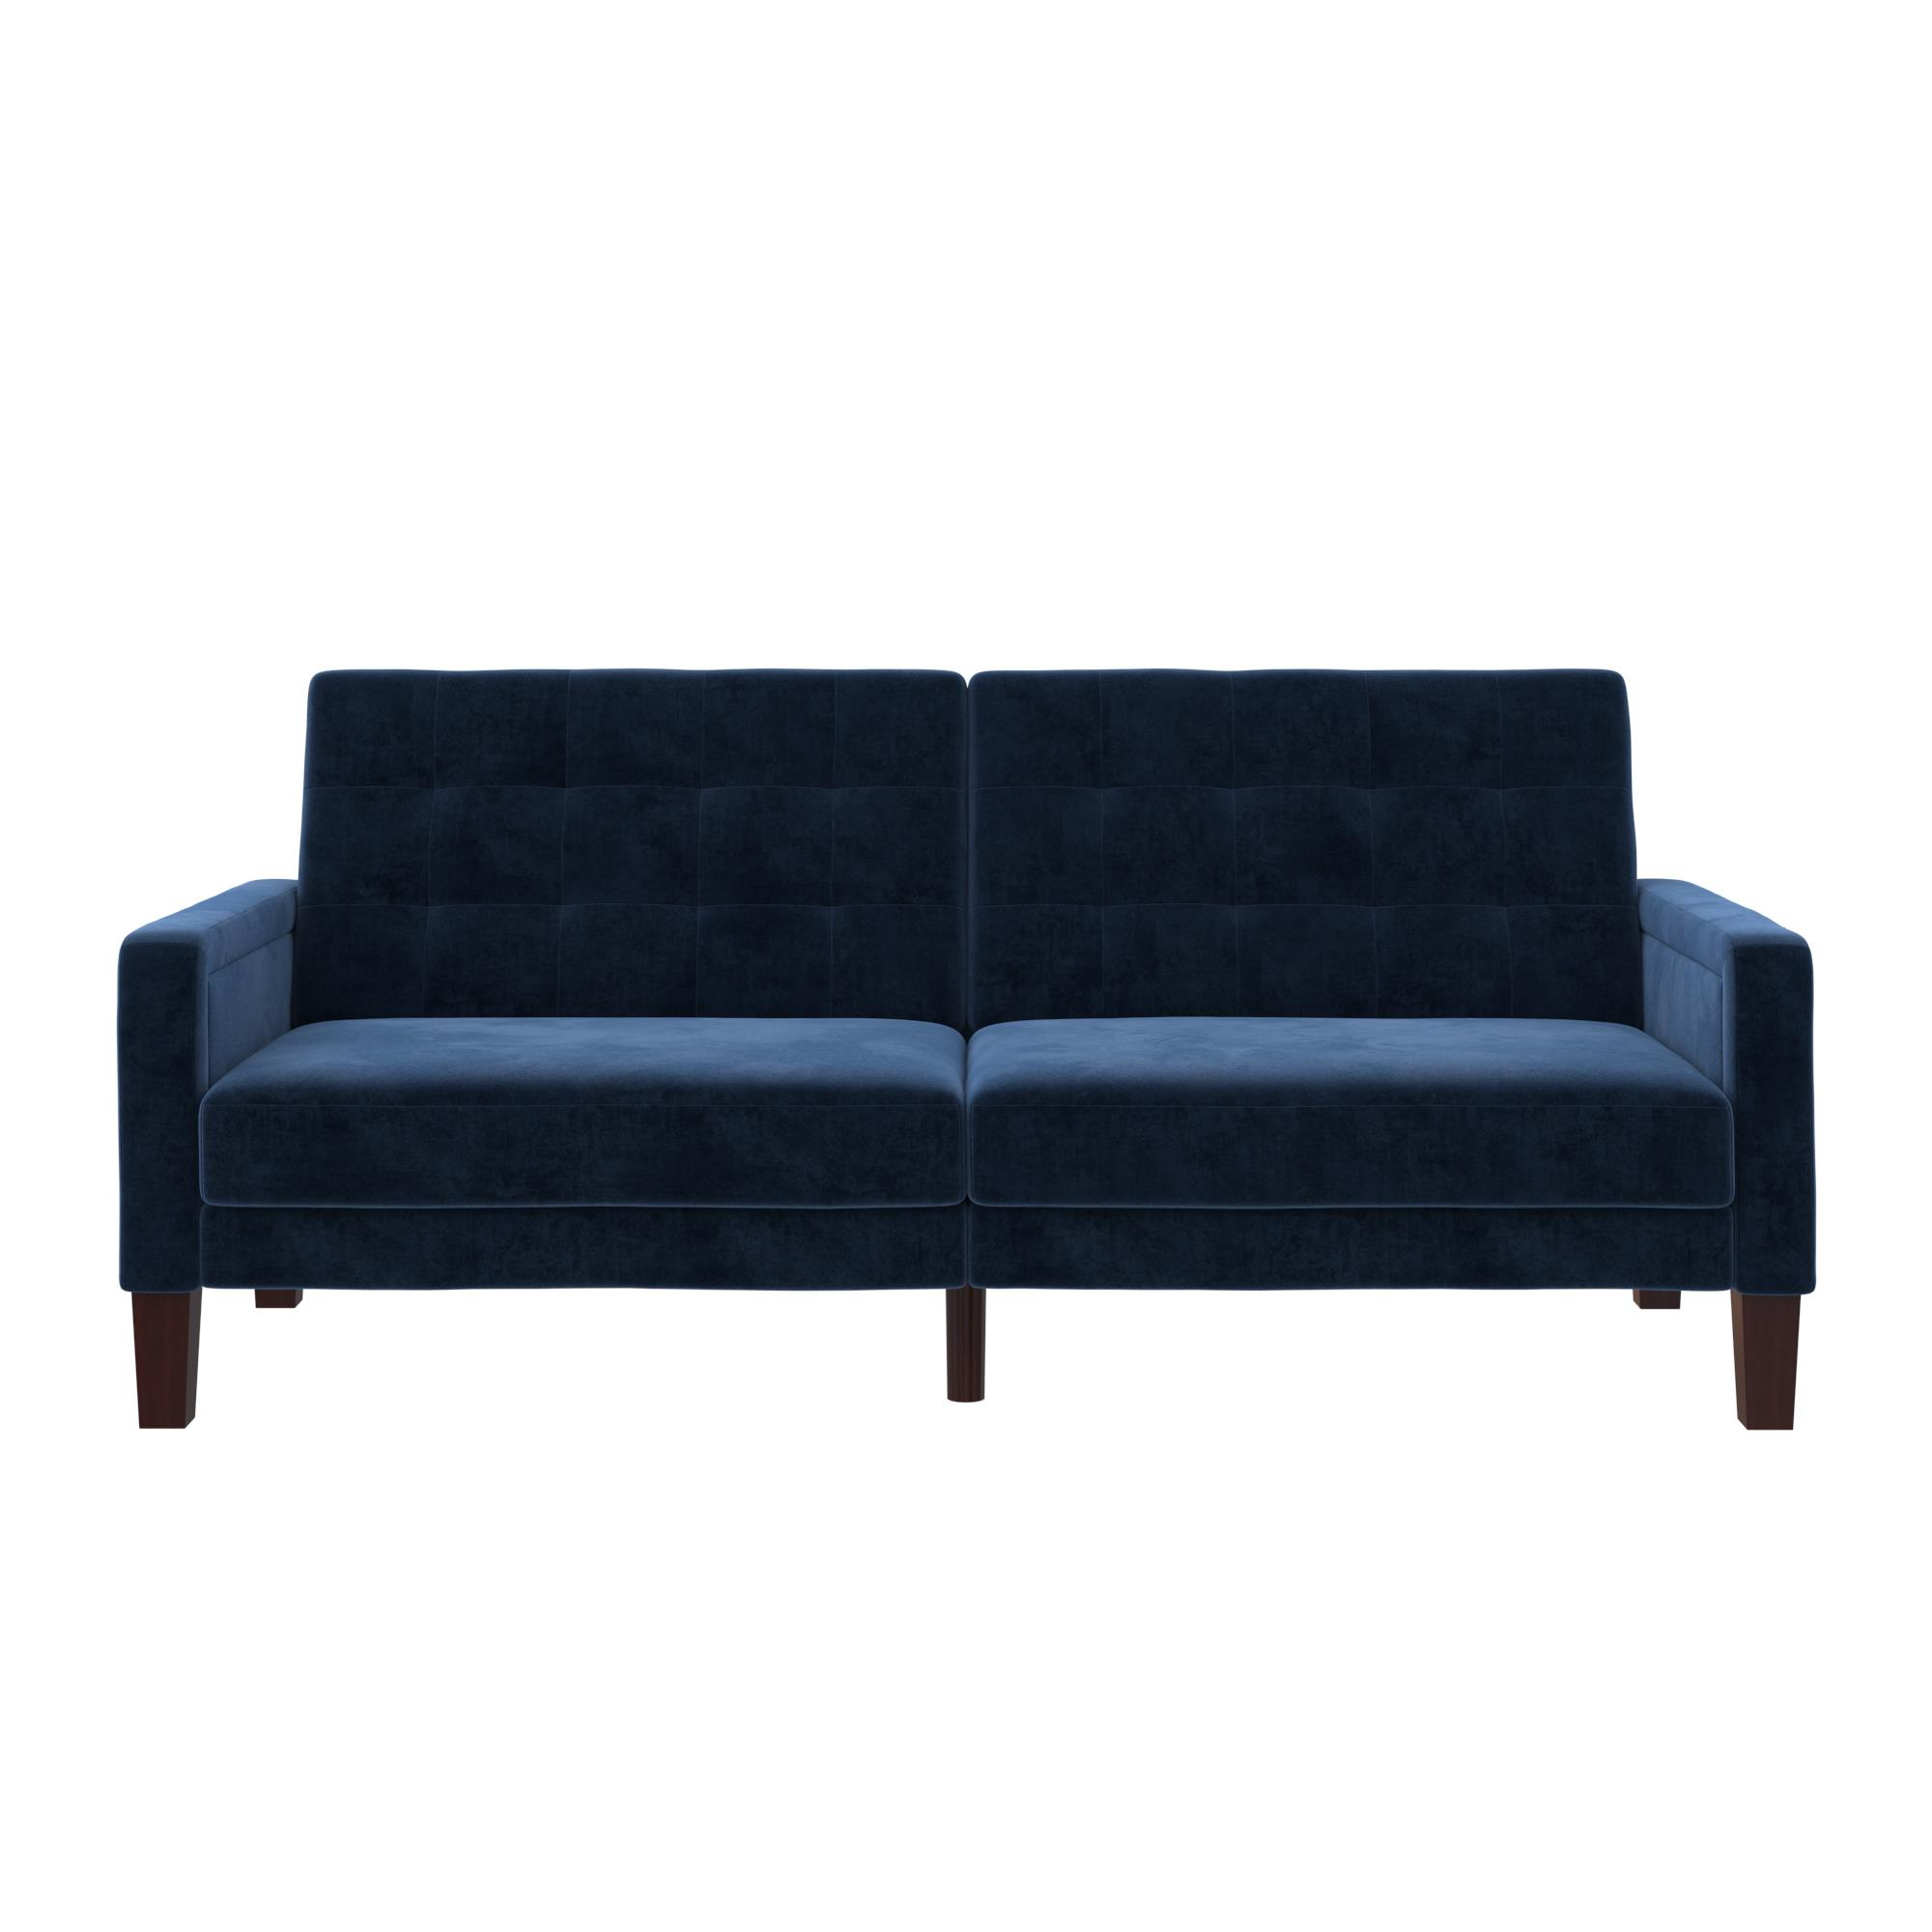 Miraculous The Best Sleeper Sofas For Small Spaces Apartment Therapy Spiritservingveterans Wood Chair Design Ideas Spiritservingveteransorg